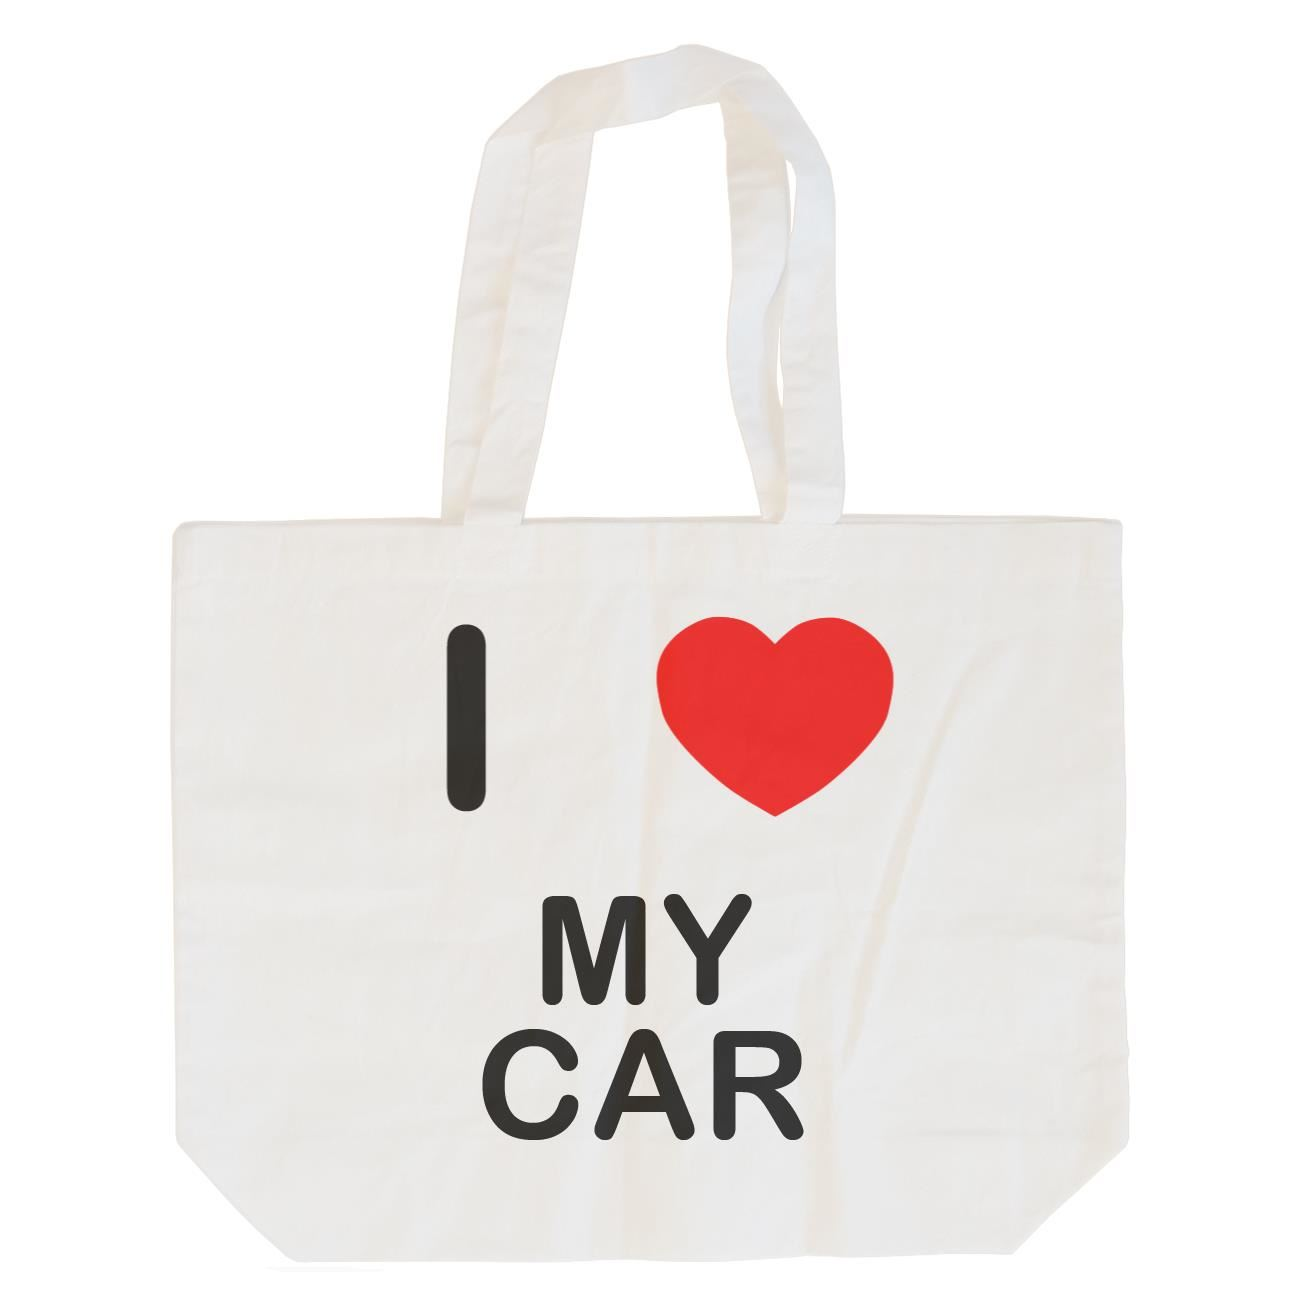 I Love My Car - Cotton Bag | Size choice Tote, Shopper or Sling